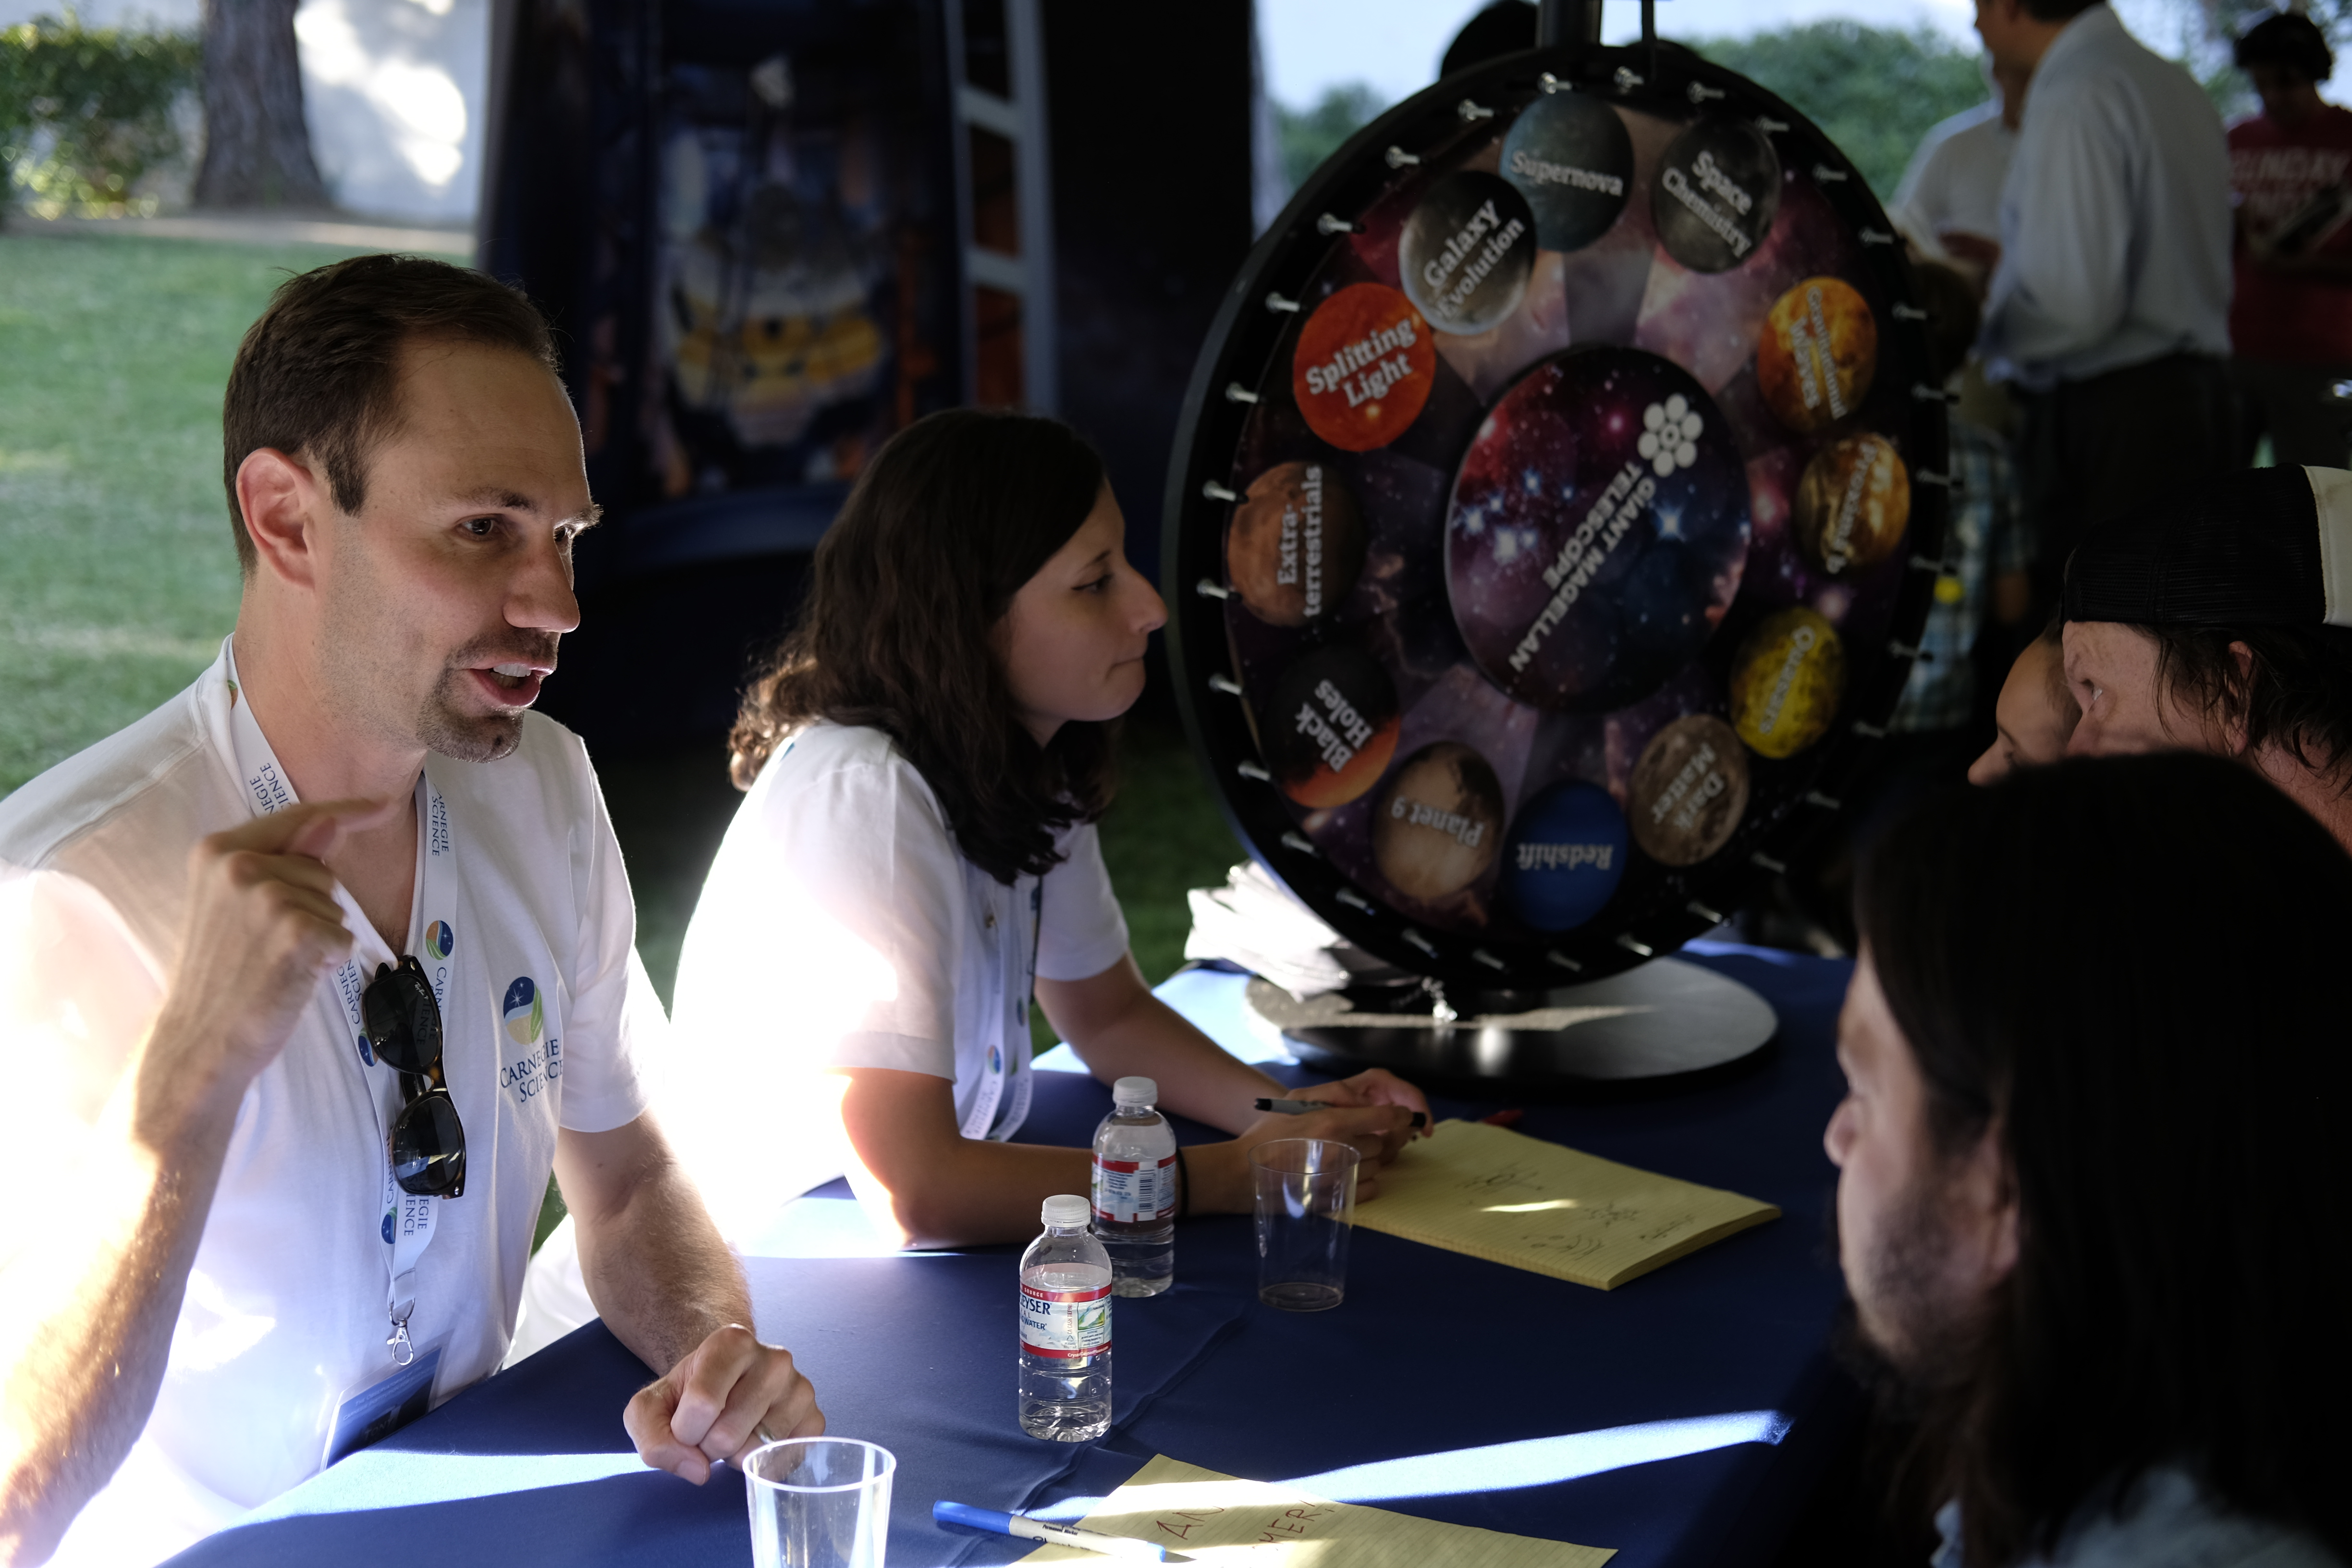 Astronomers answer questions at the Ask an Astronomer table